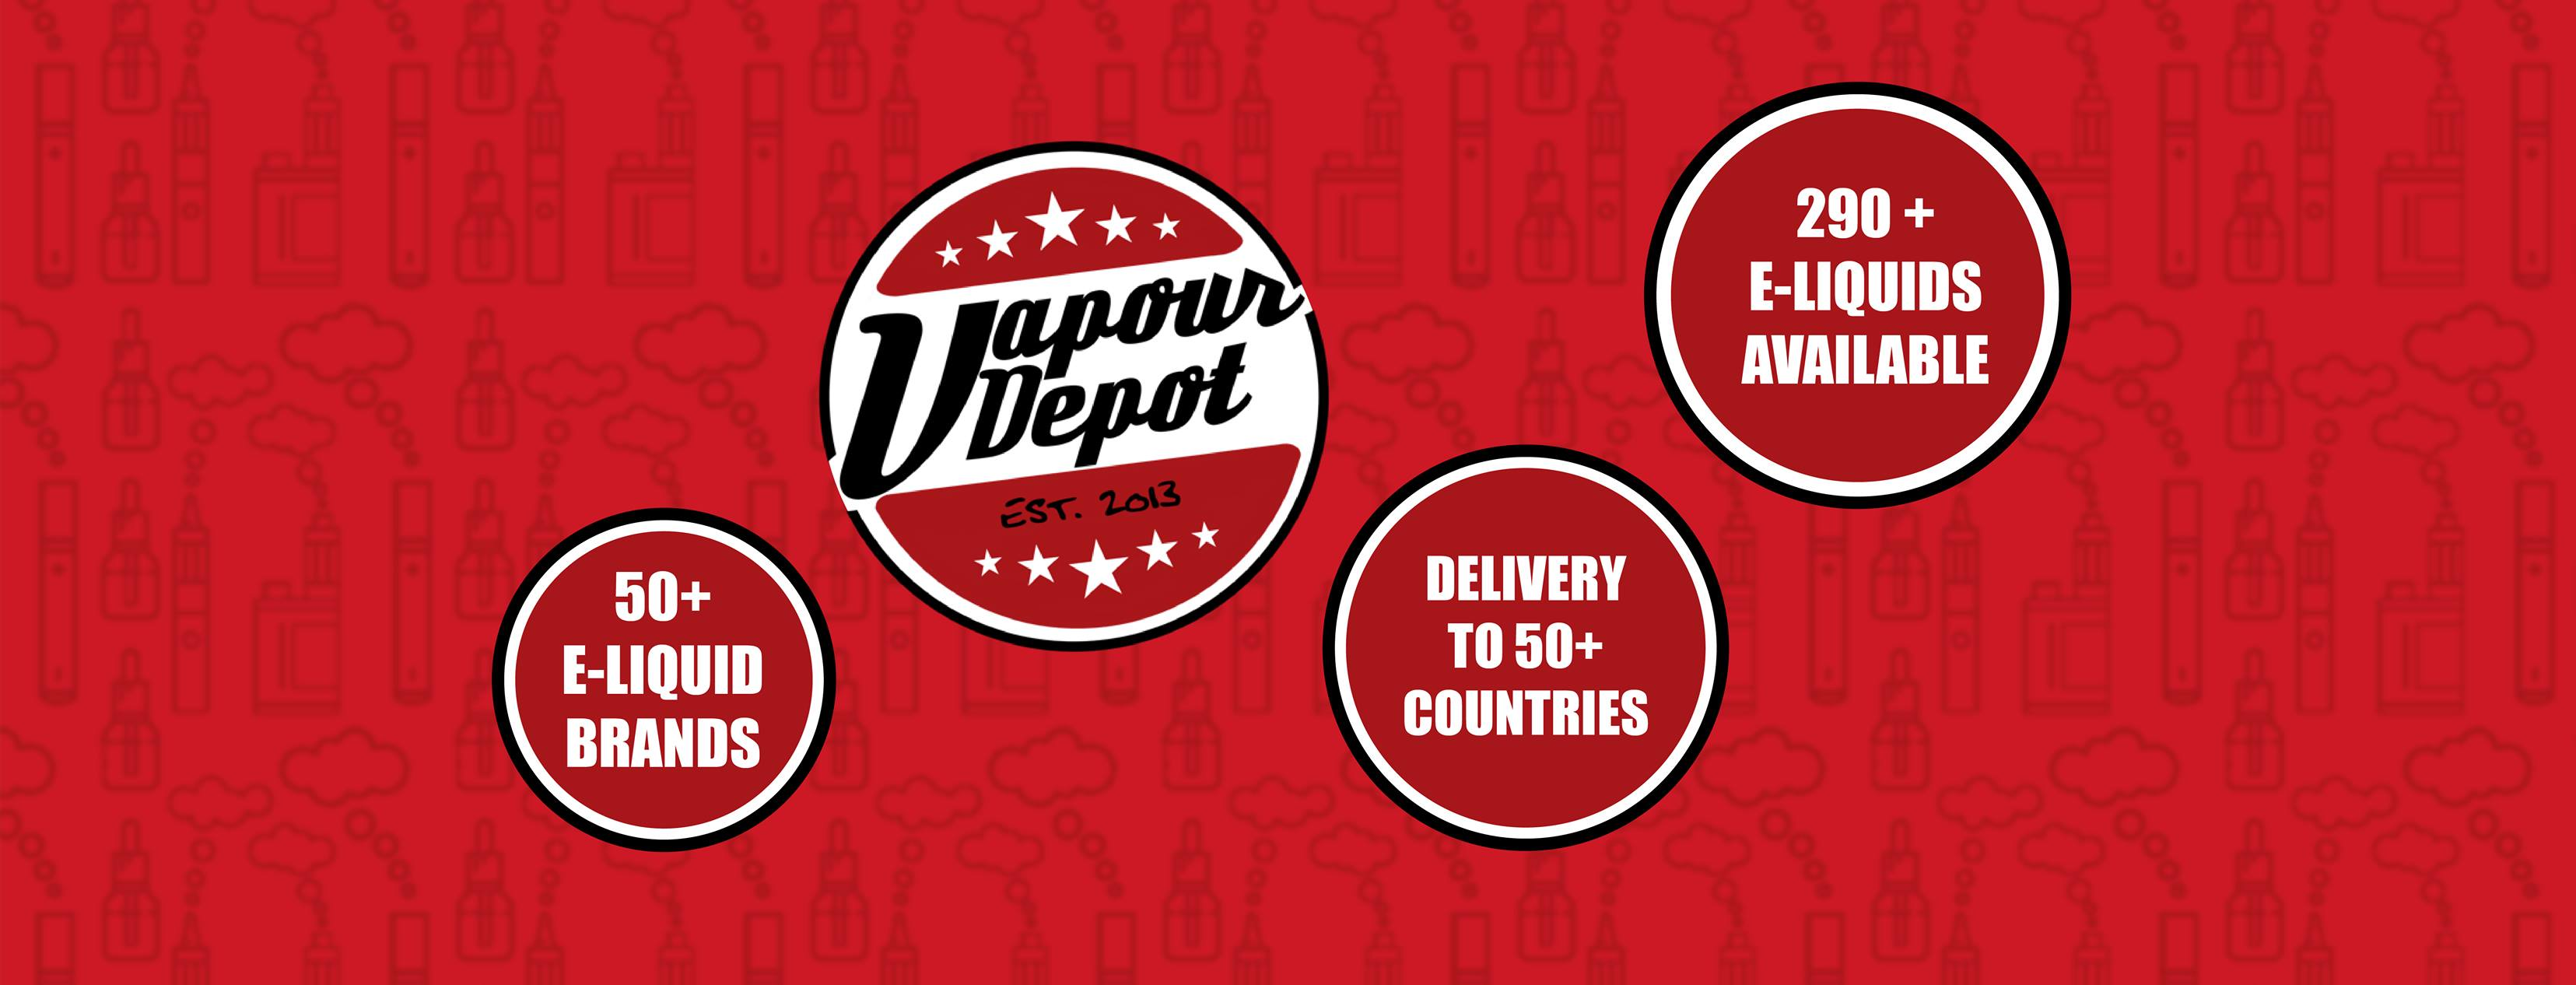 Vapour Depot Limited screenshot